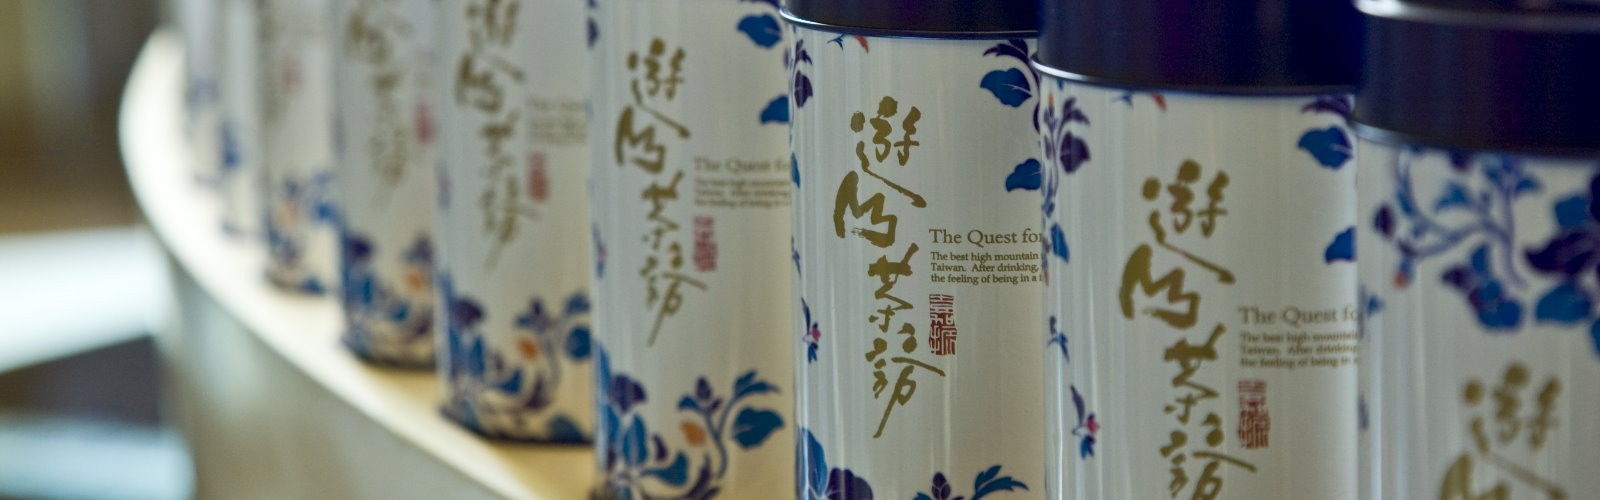 The choice of Tea sommelier, Unified qualities